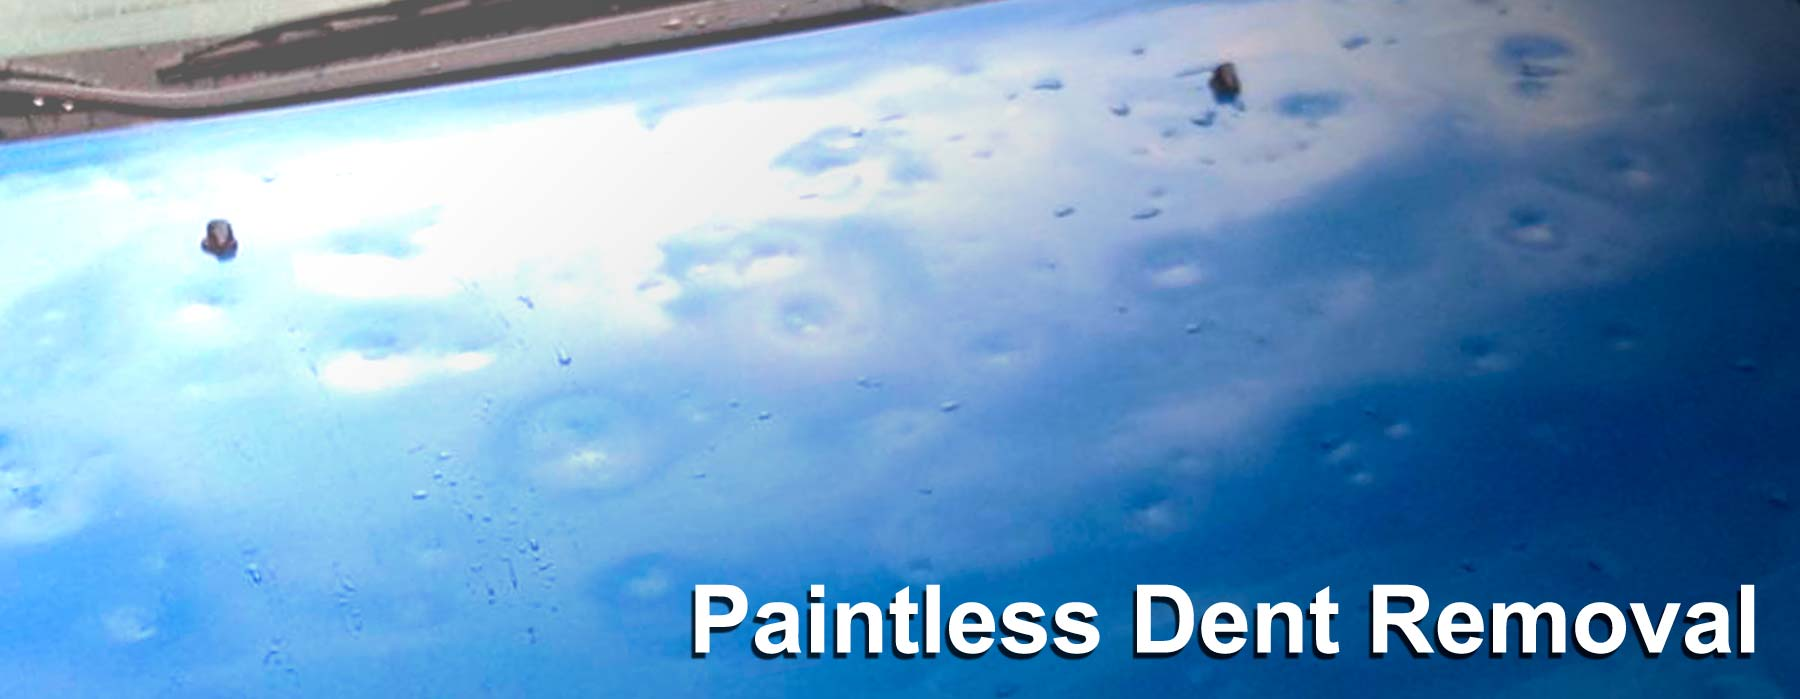 Paintless Dent Removal | Dave Arbogast